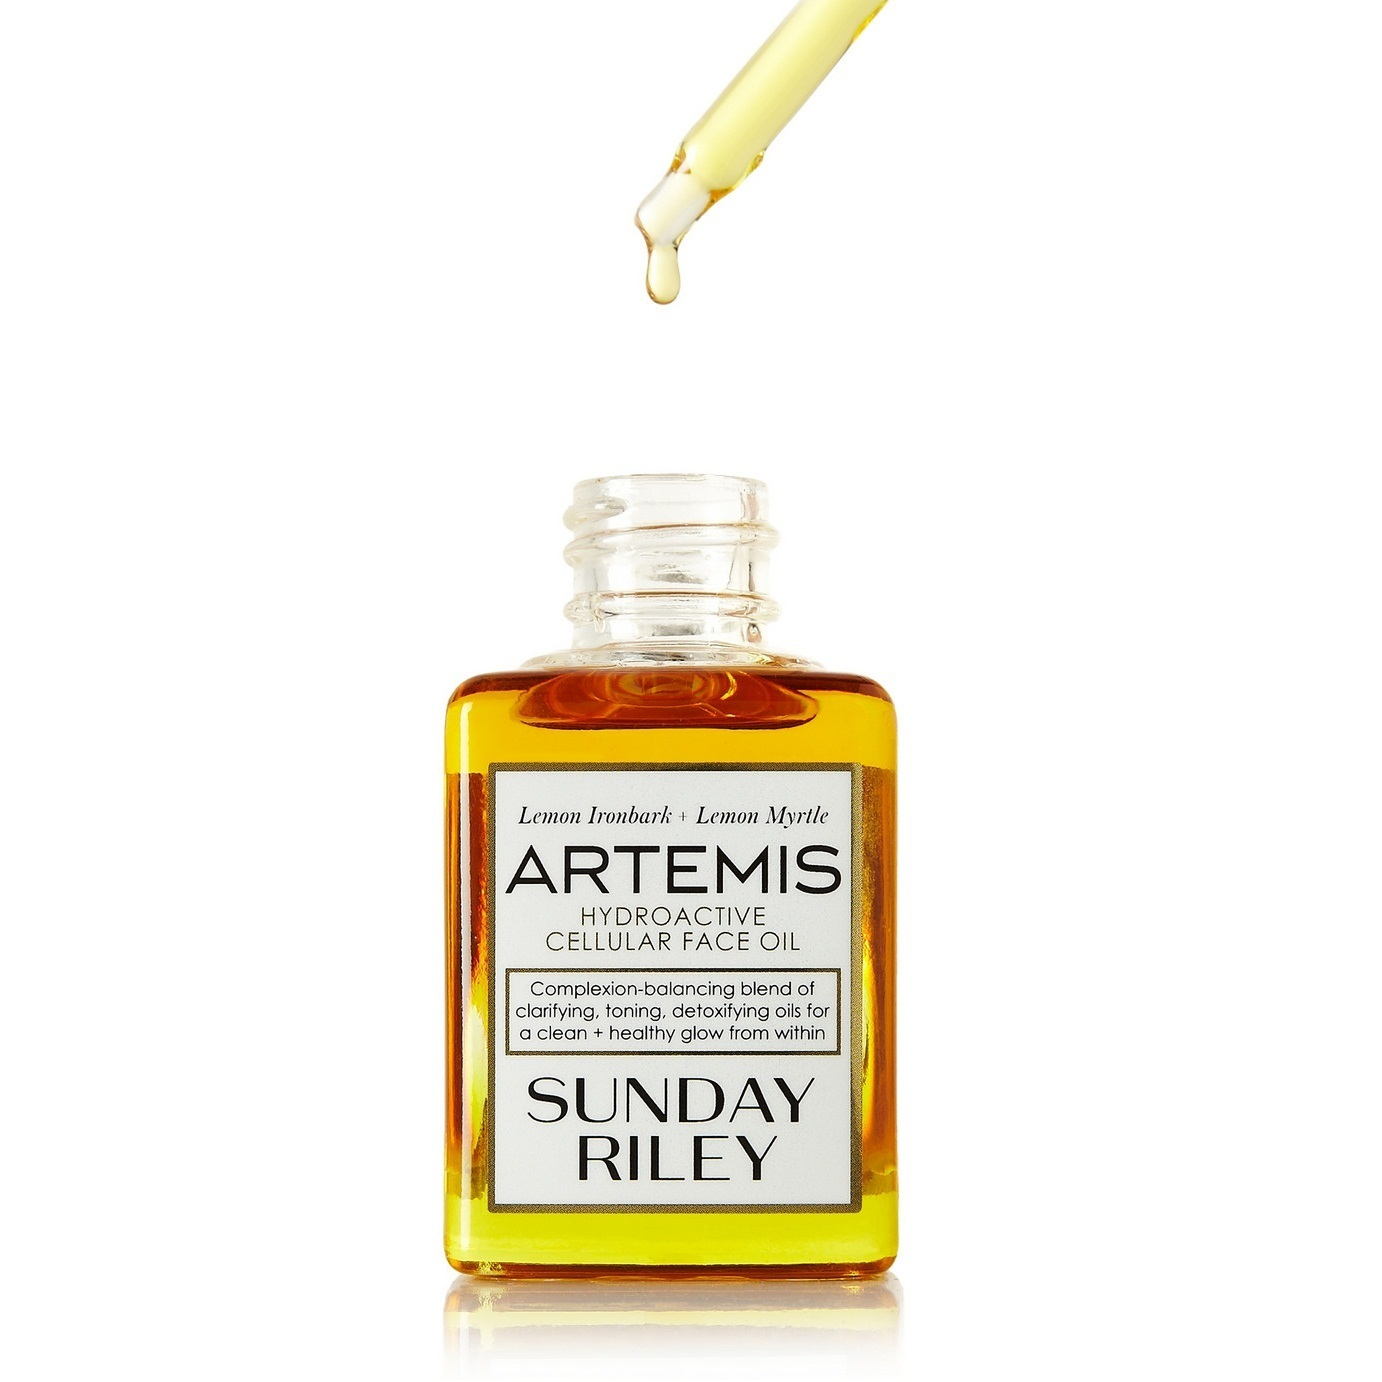 【SUNDAY RILEY】Artemis Hydroactive Cellular Face Oil